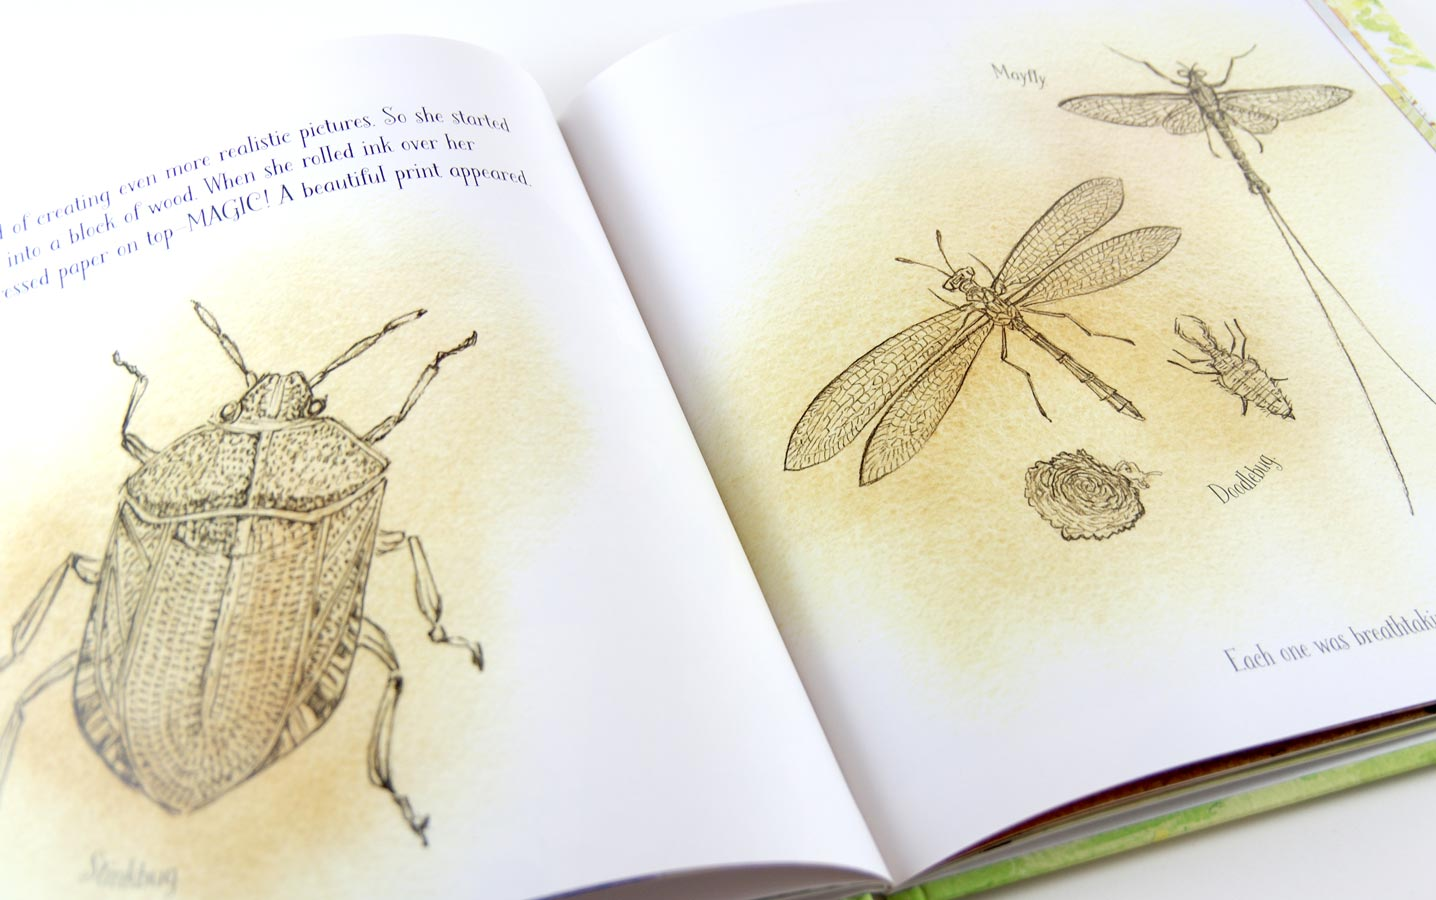 Watercolor illustration of insects drawn in the style of Anna Comstock's prints